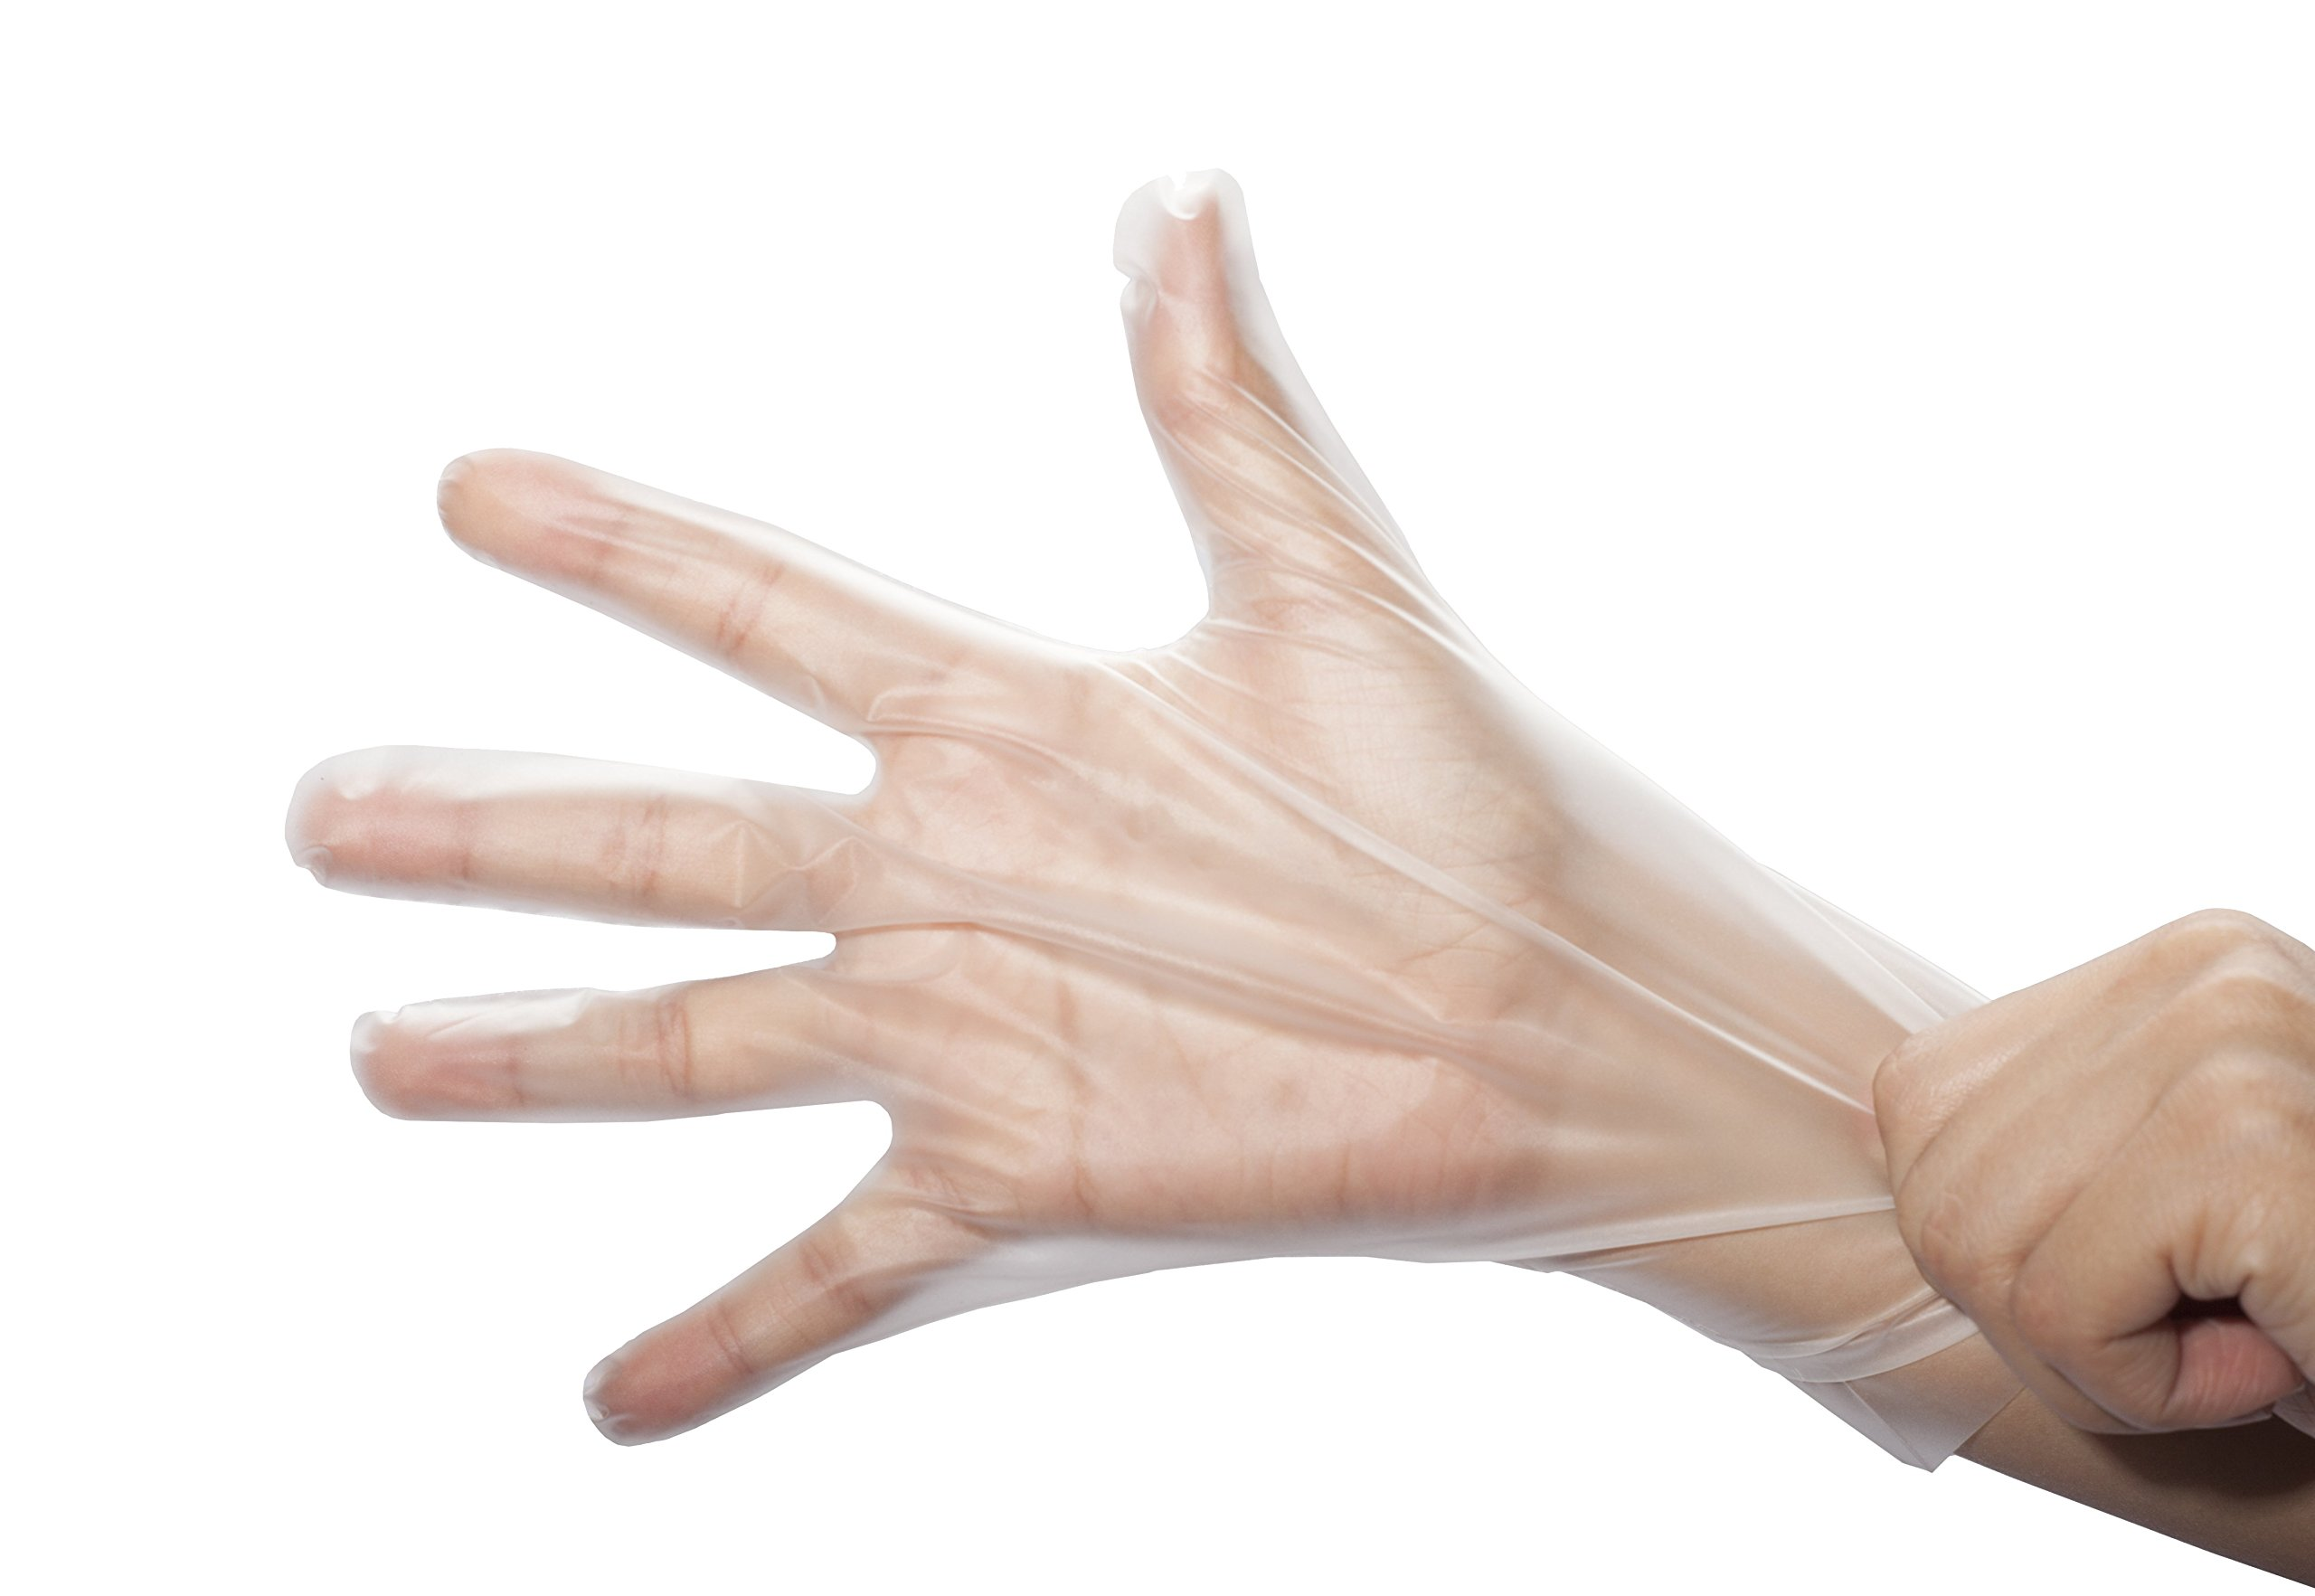 Stretch Poly Clear Gloves-Powder & Latex Free, Food Preparation Safe, Snug Fitting, Kitchen Cooking, 3.2 Mil, Food Service Gloves 71LGc5nyVQL